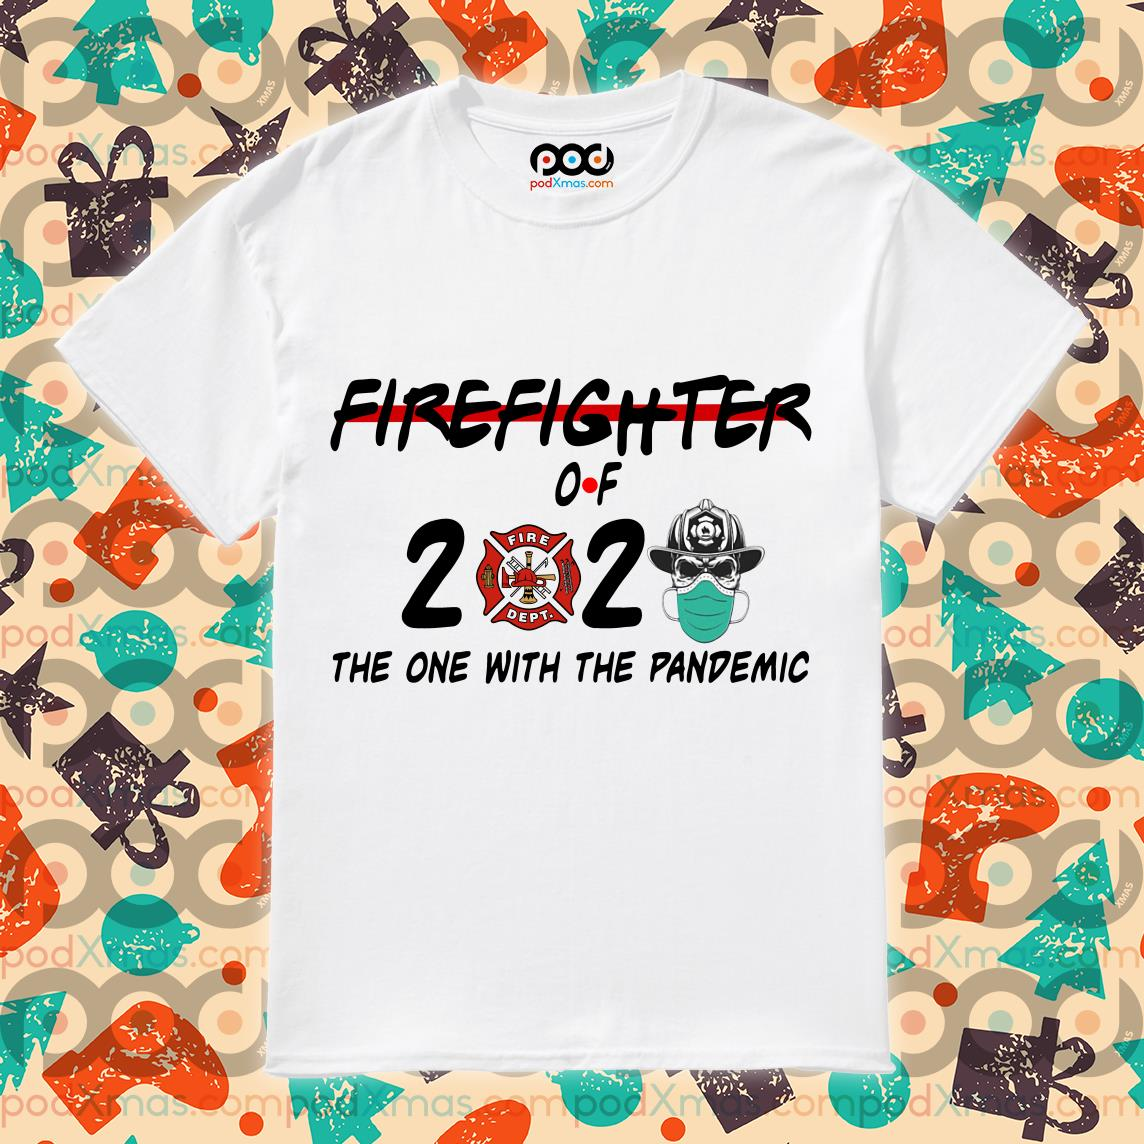 Firefighter of 2020 the one with the Pandemic T-shirt